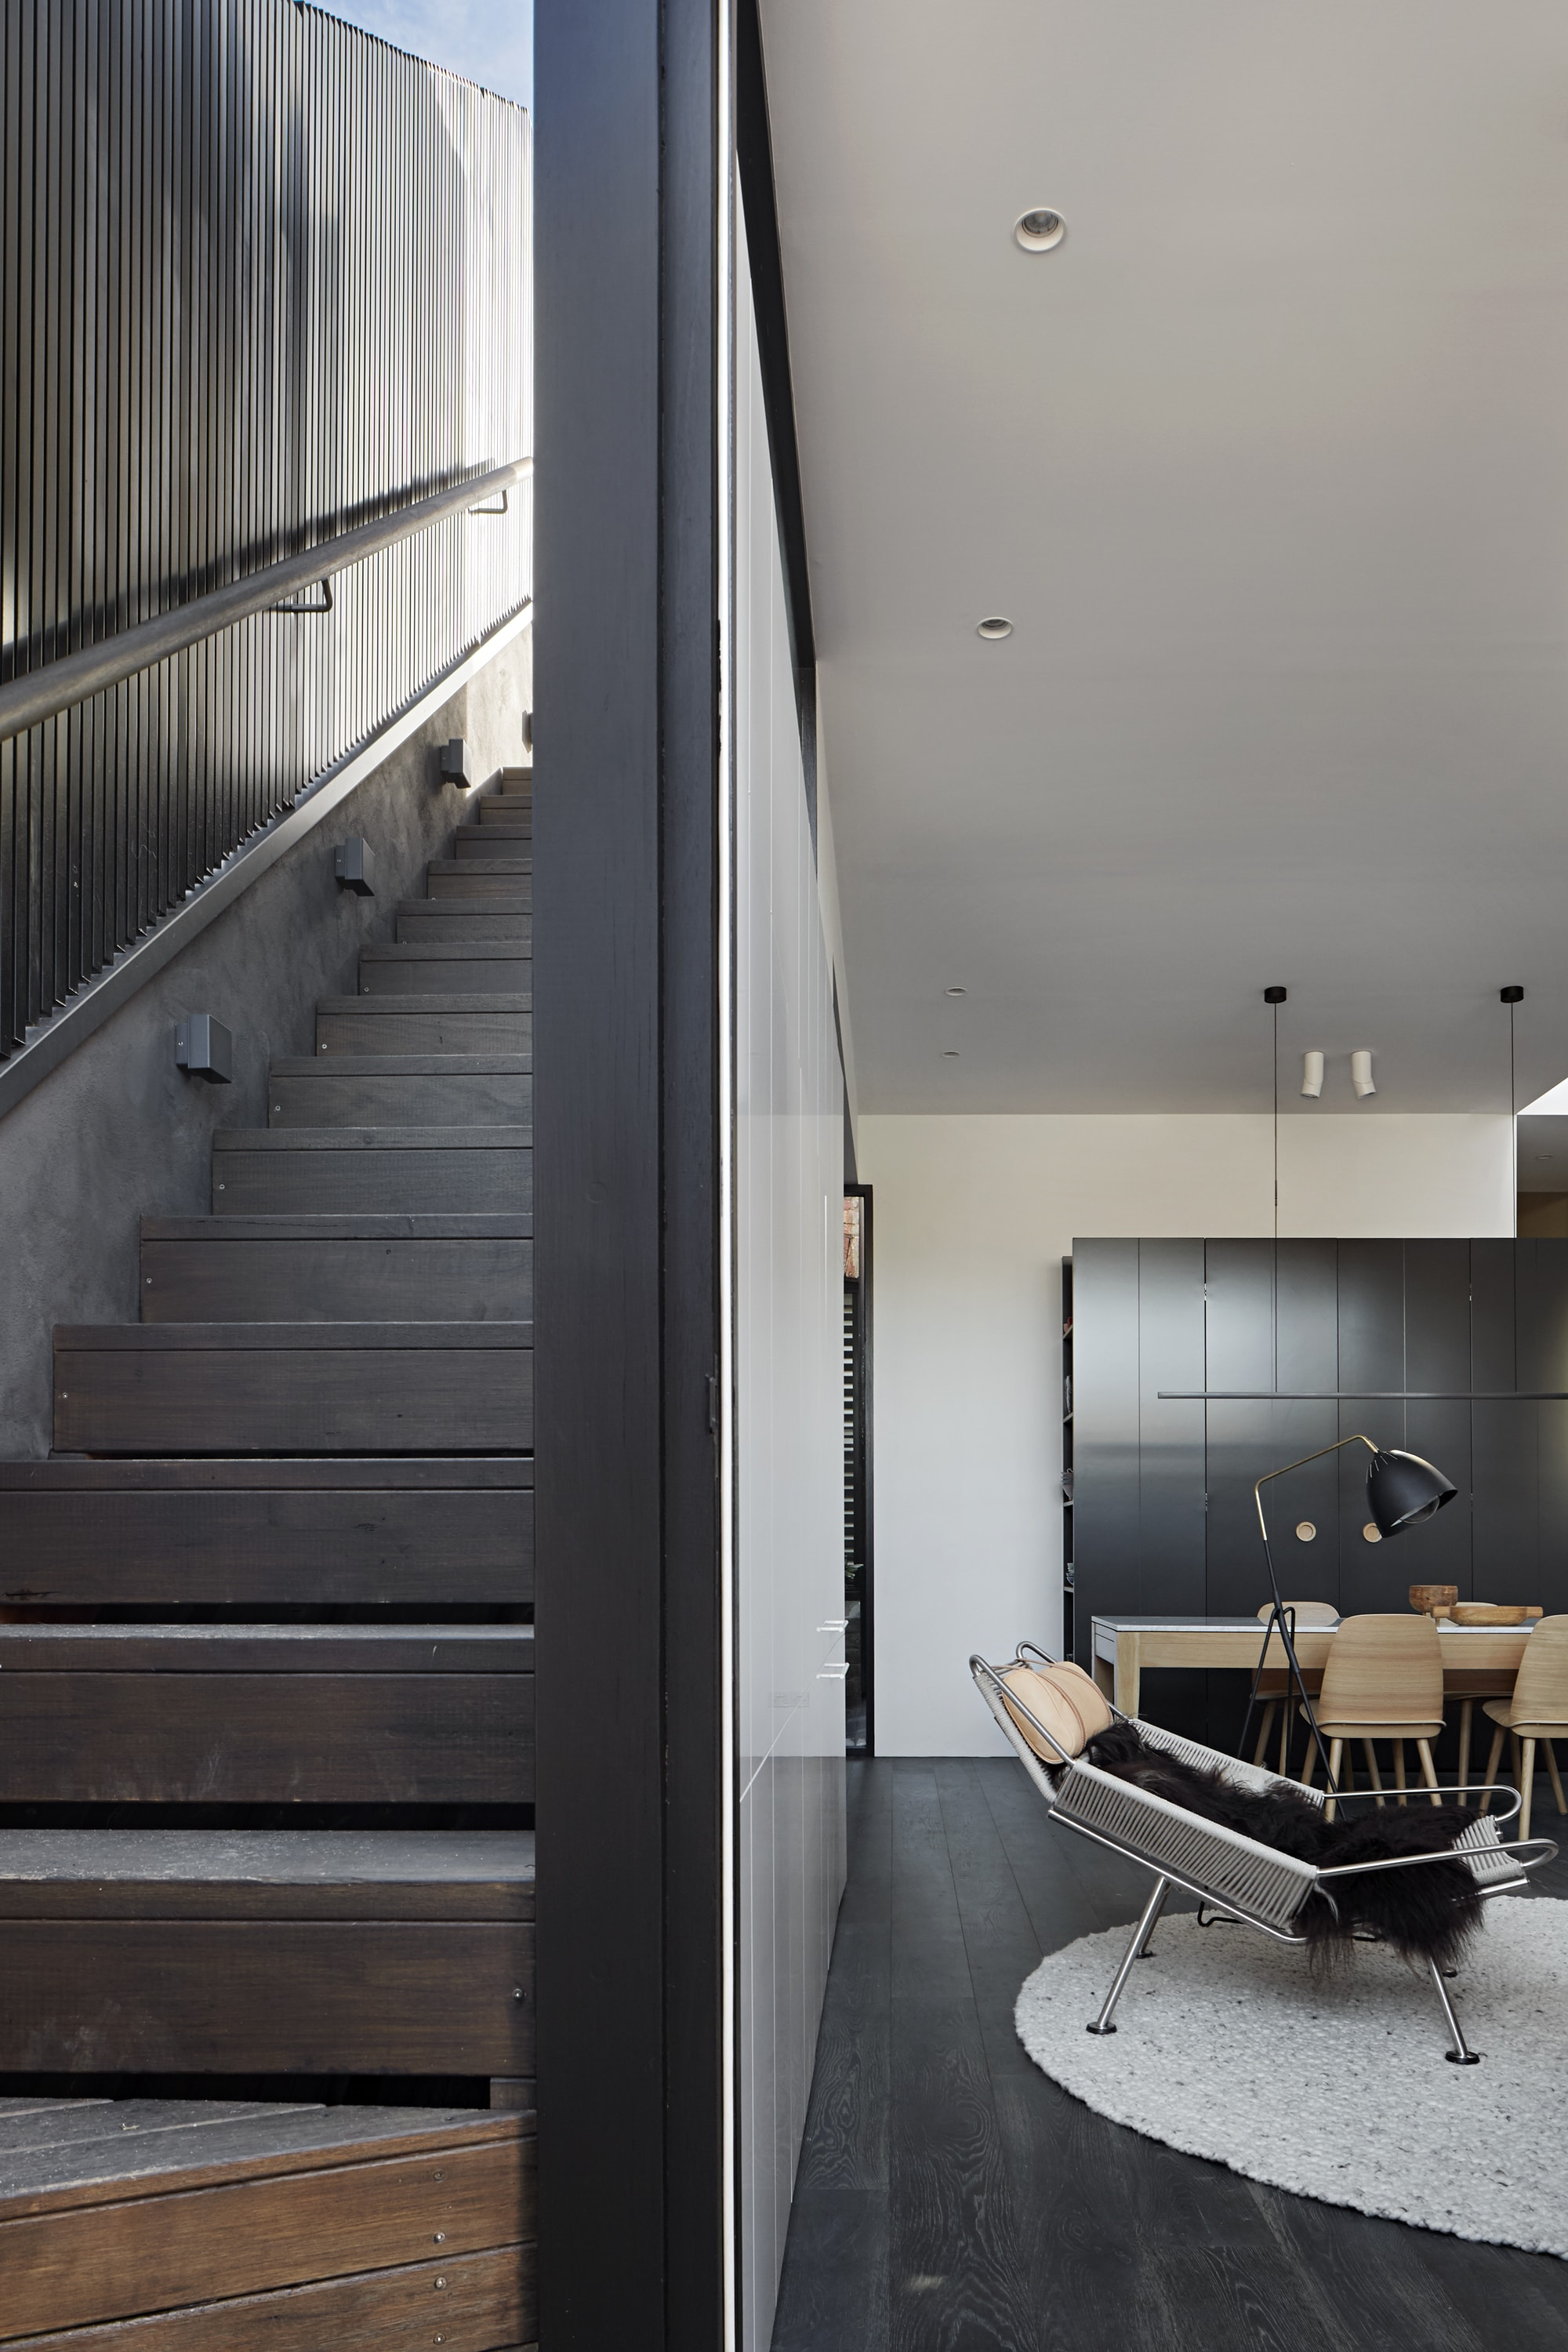 The Pocket House By Whiting Architects The Fisher & Paykel Series Melbourne, Victoria, Australiaf&p Whiting Littleogrady ©smg 8868 Min